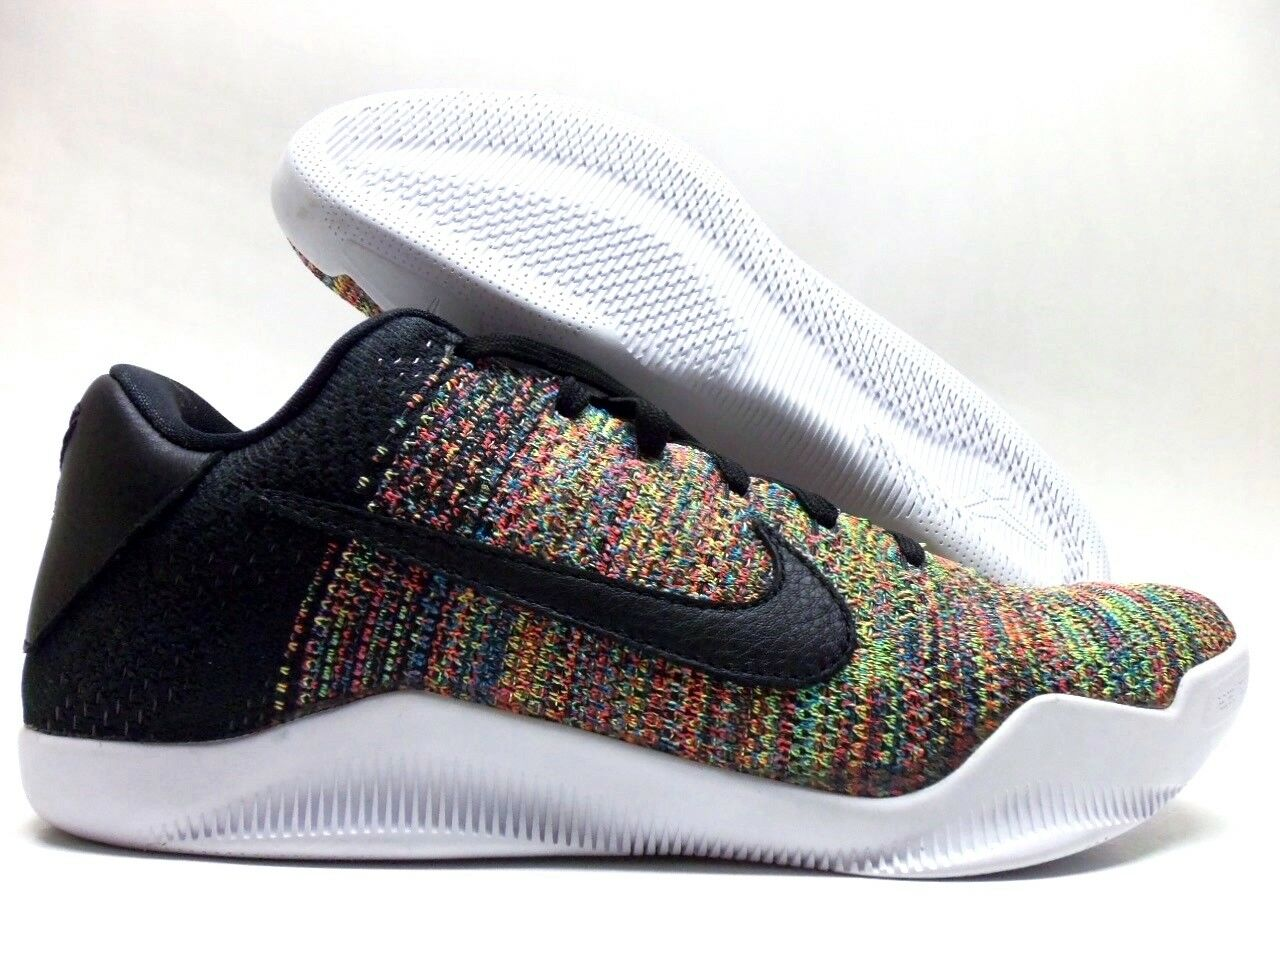 finest selection 4969c 5dad0 ... coupon for nike kobe xi 11 flyknit faible id multi color noir flyknit  élite hommes 8